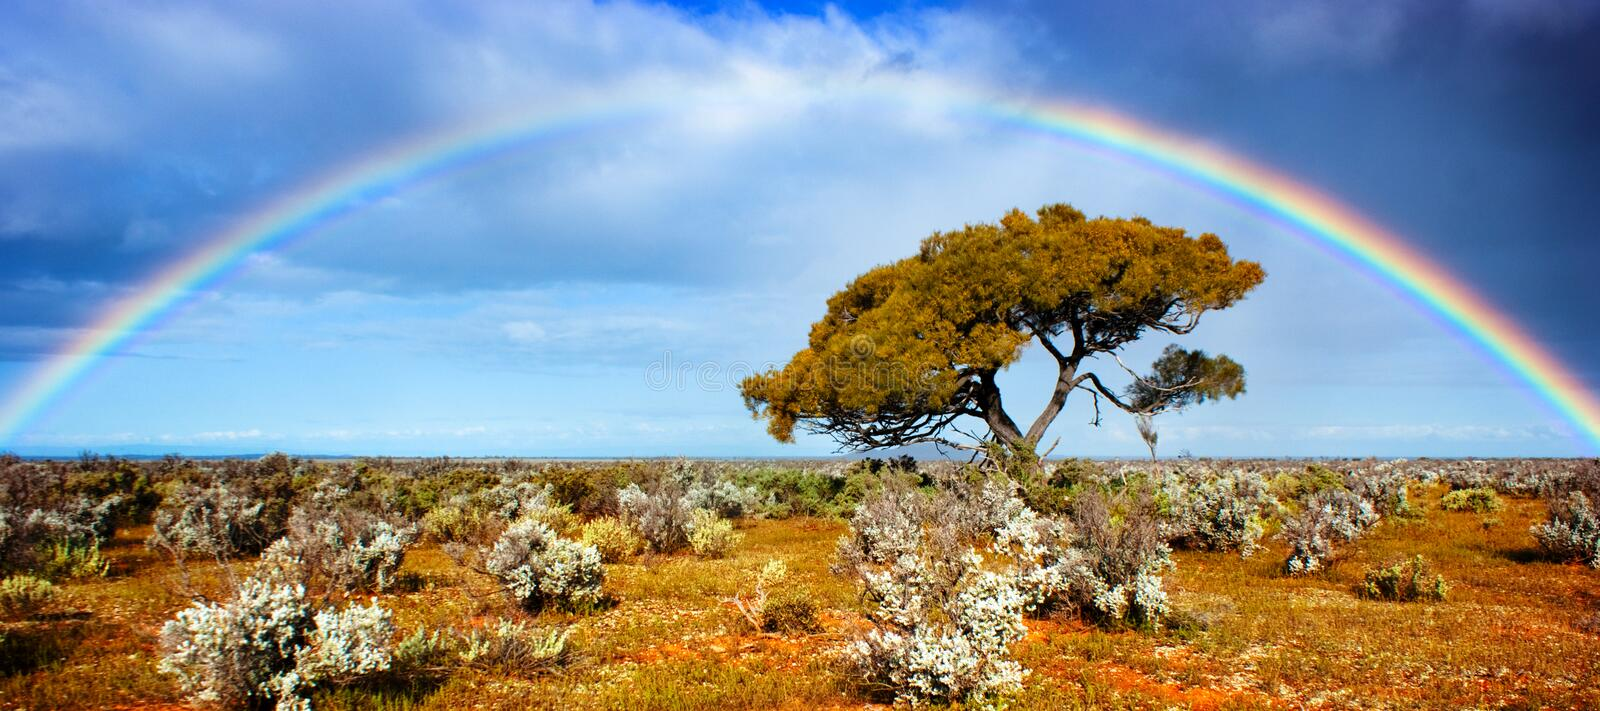 Download Rainbow Glory stock image. Image of australia, beauty - 16932295